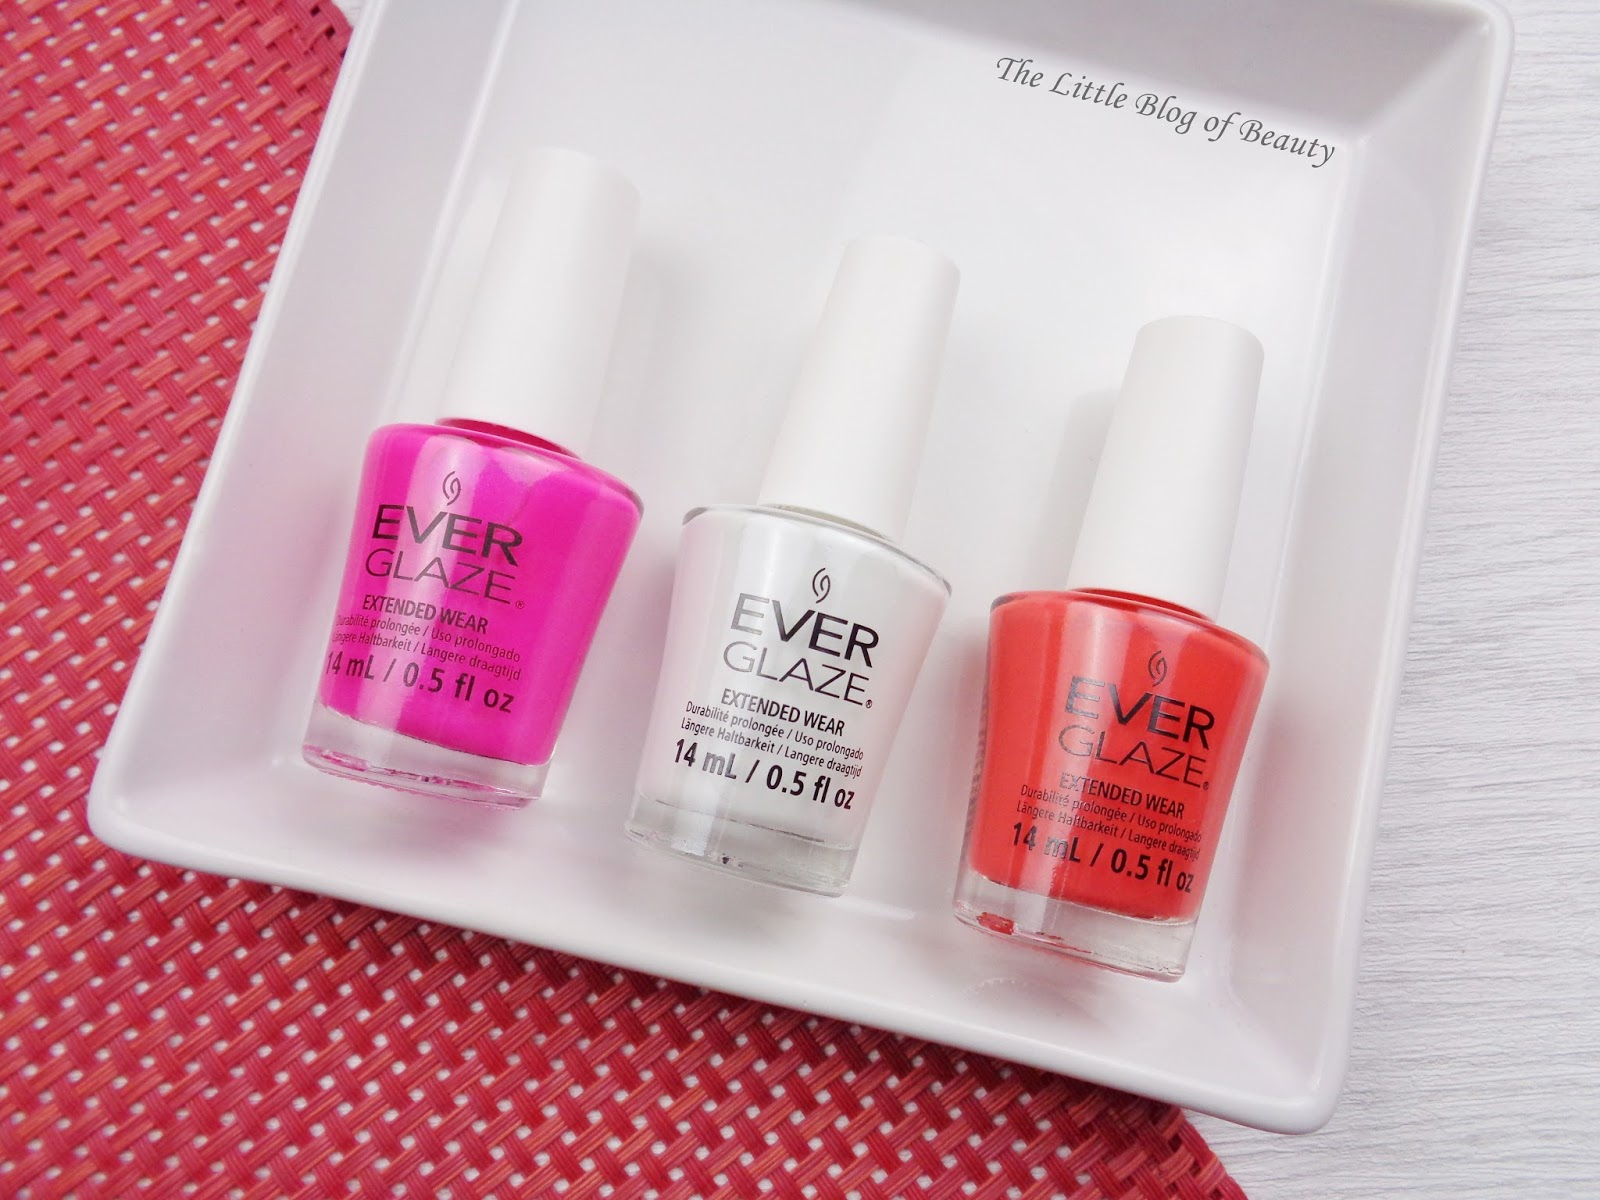 China Glaze Ever Glaze Extended wear gel nail varnishes | The Little ...